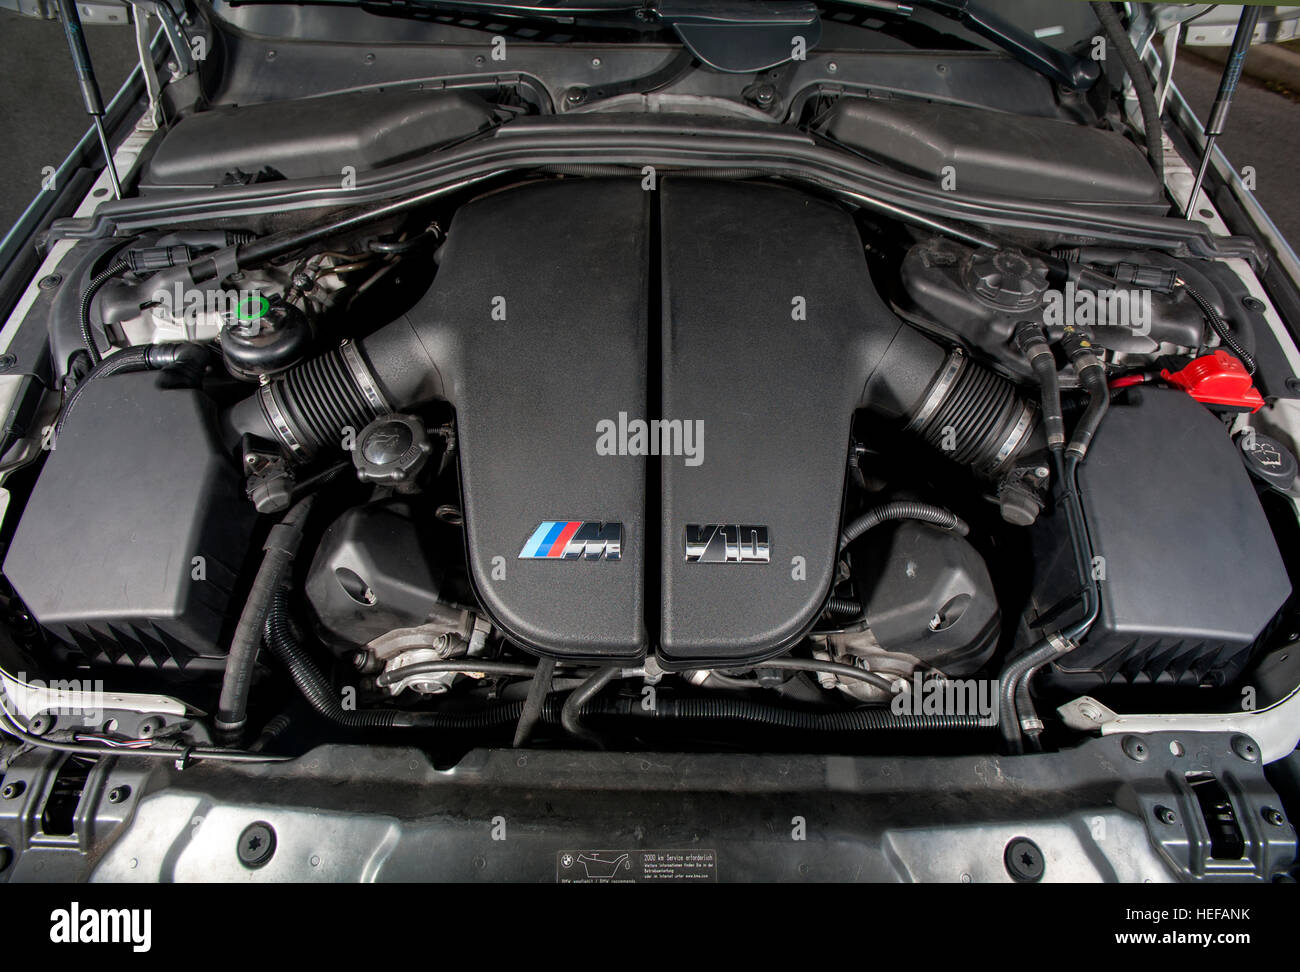 V10 Engine In A Bmw E60 M5 2003 2010 German Super Saloon Stock